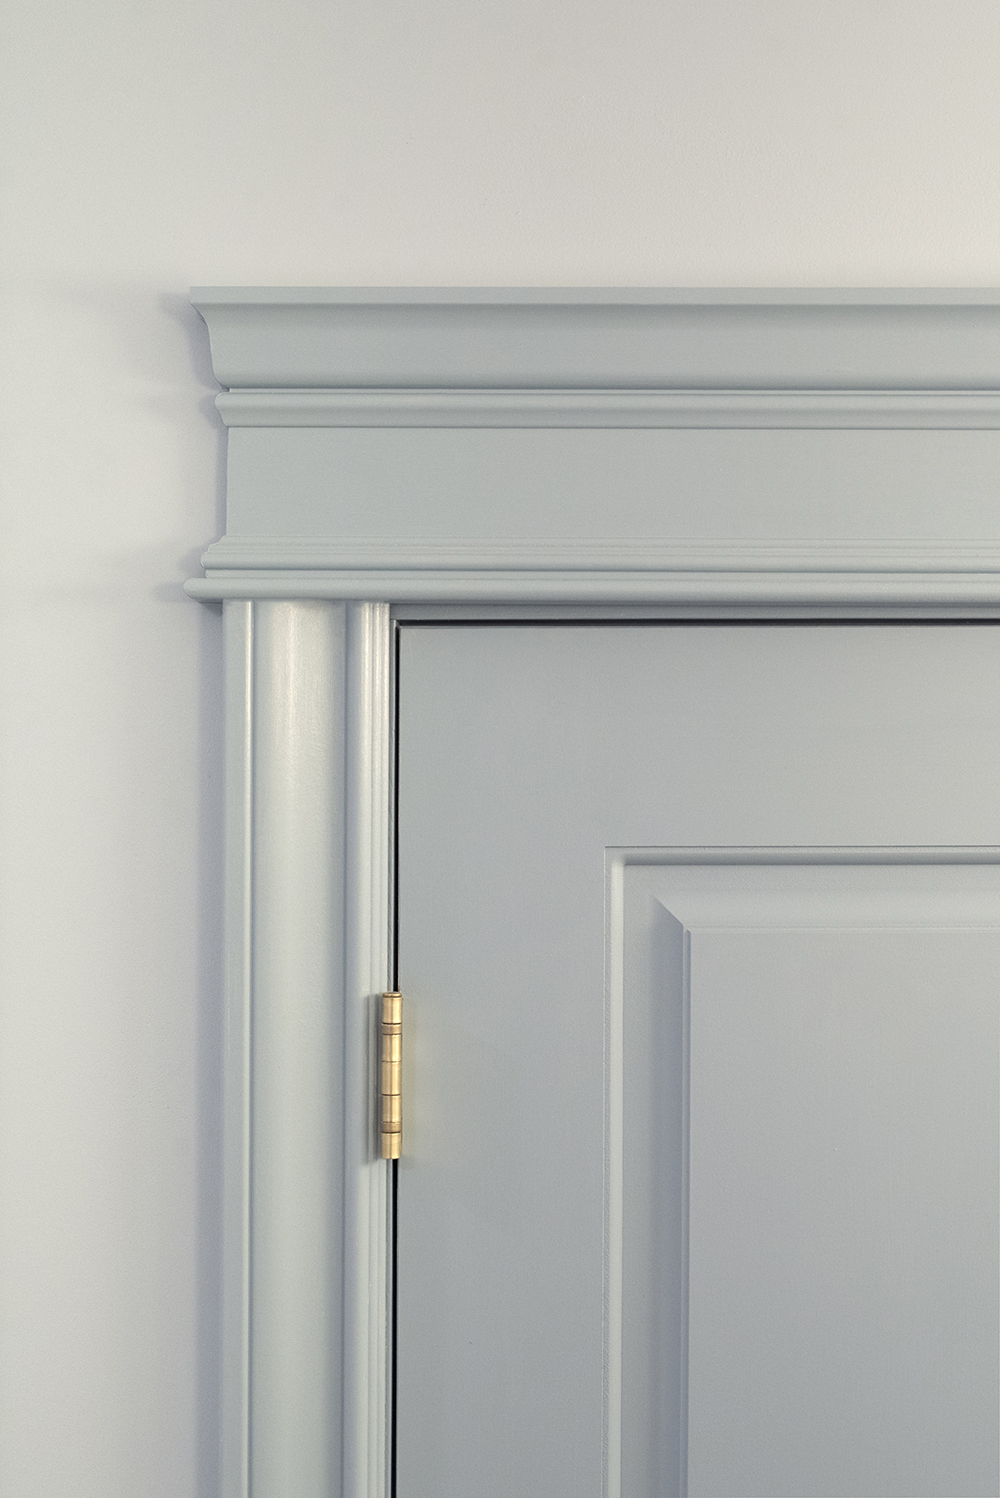 How to Select Millwork Profiles + The Trim I Chose - roomfortuesday.com